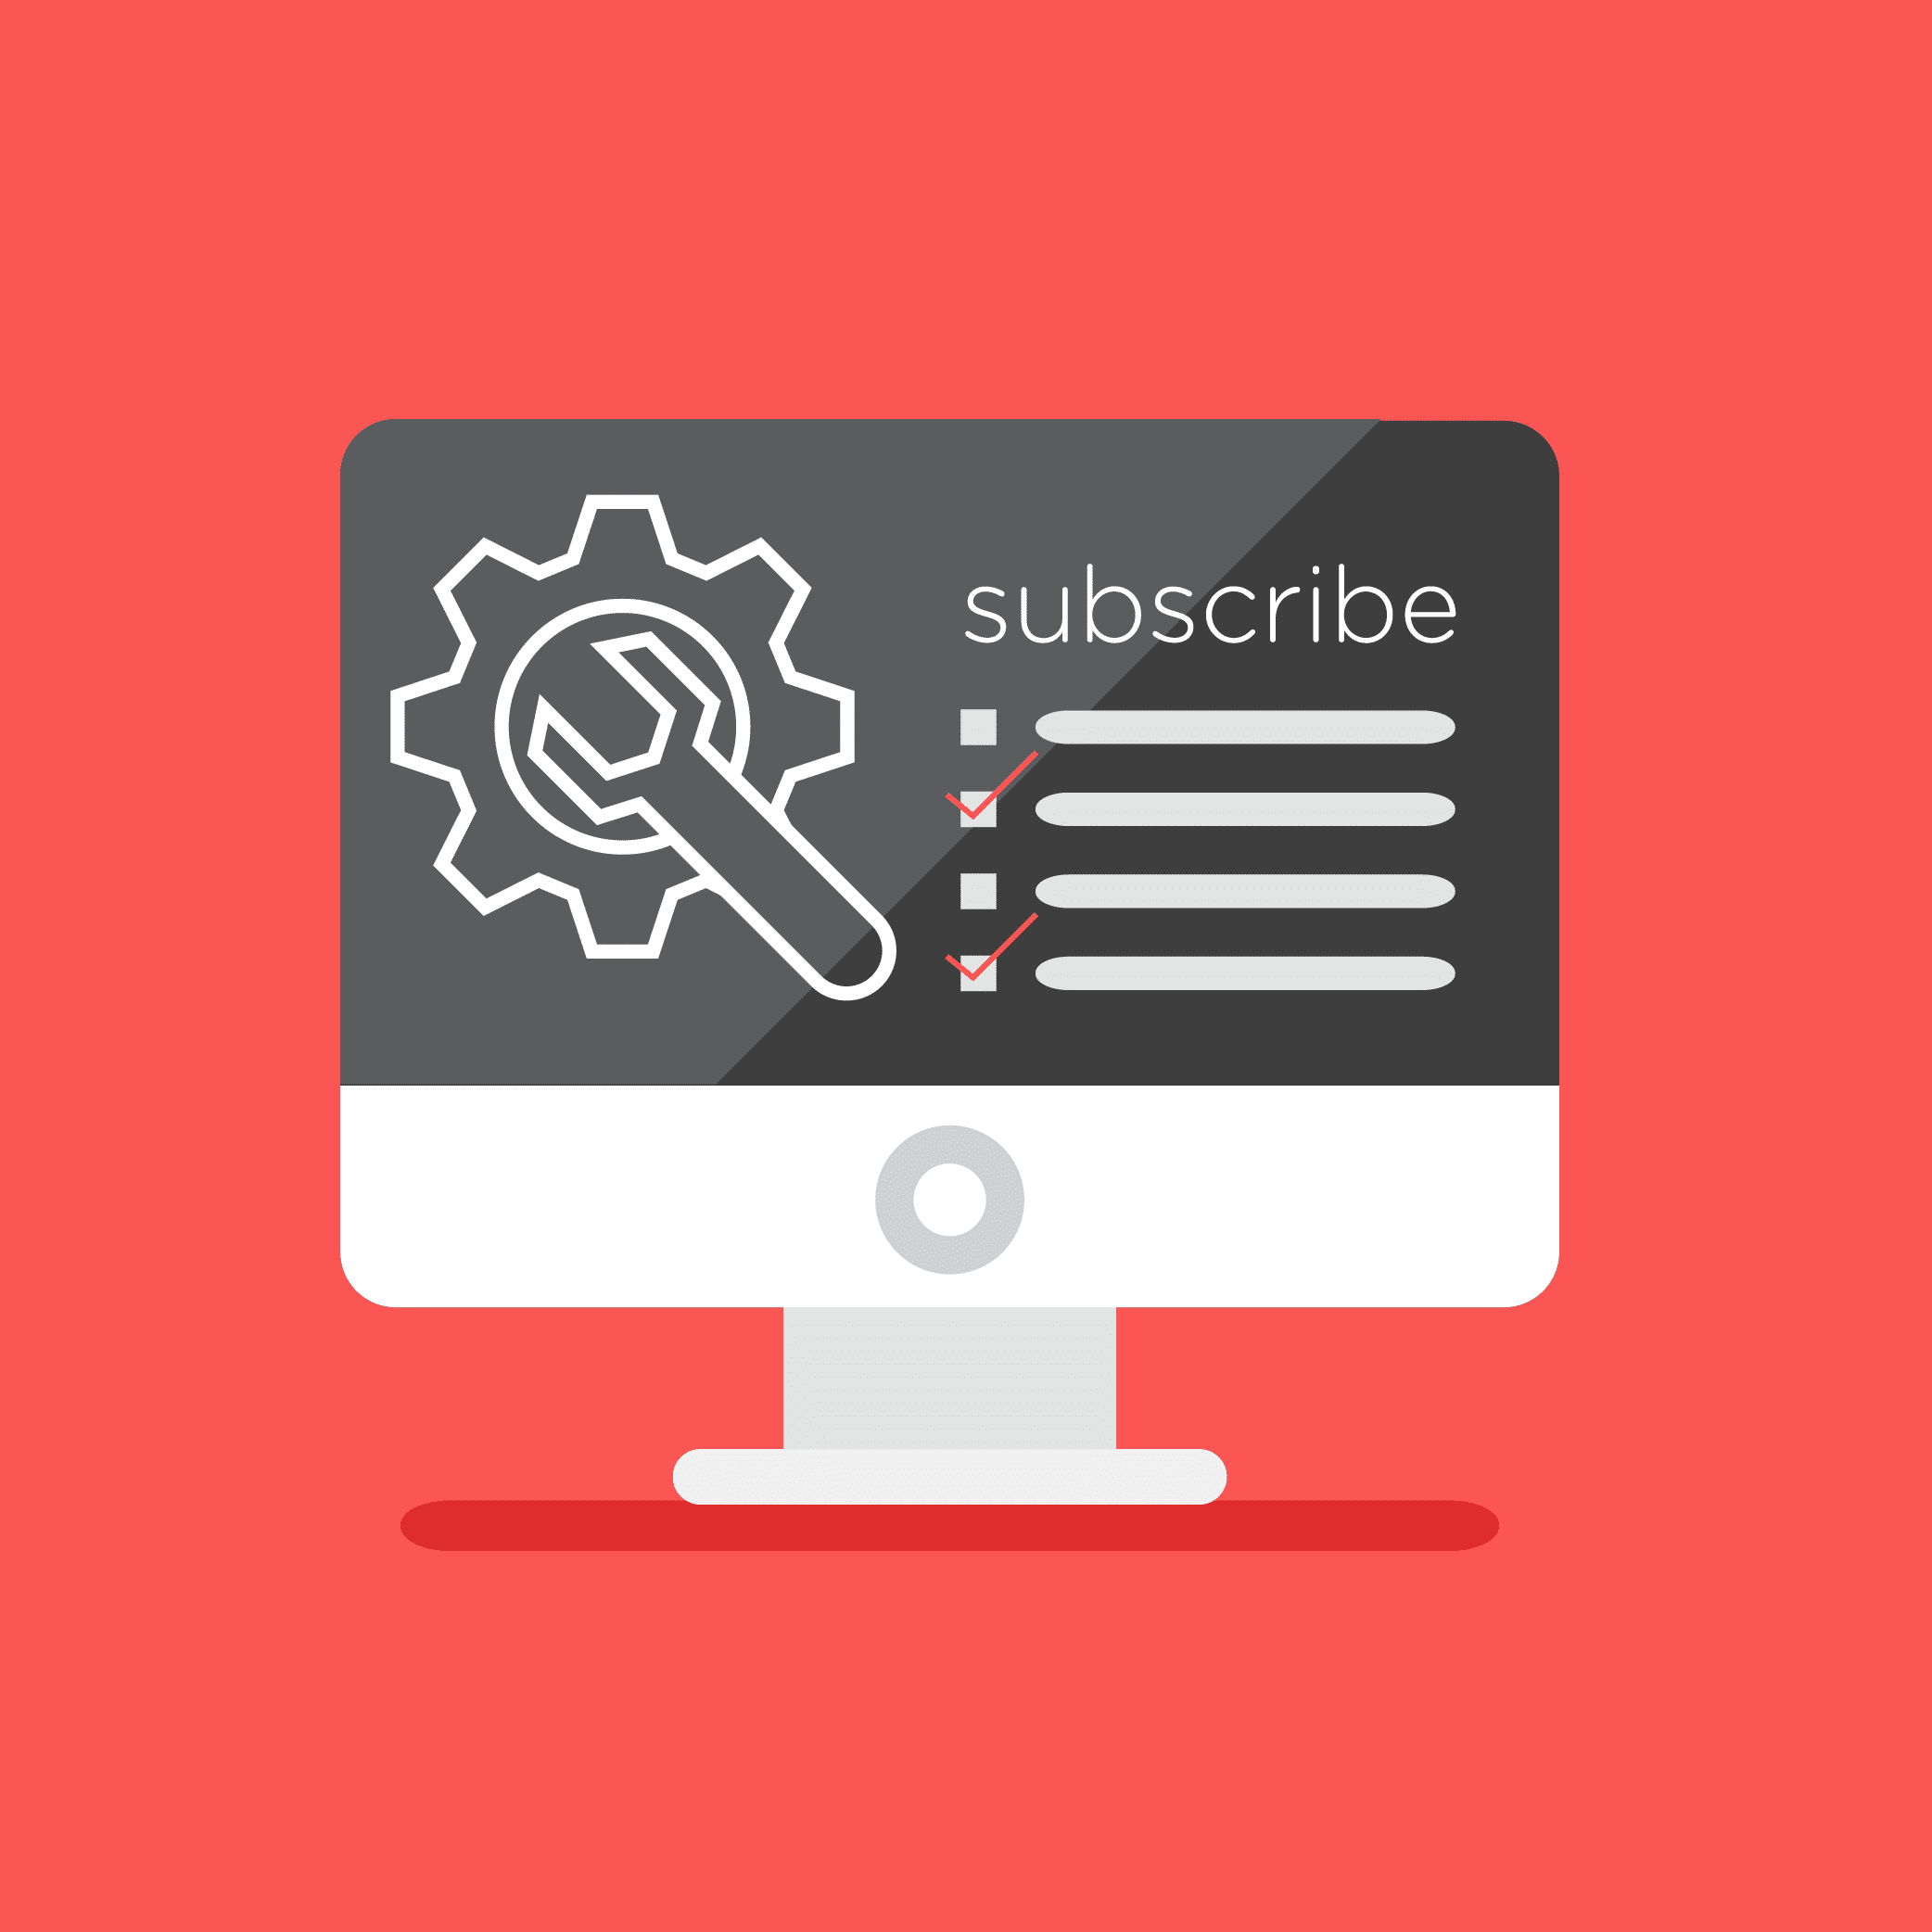 Illustration of a web page with a large Subscribe button.